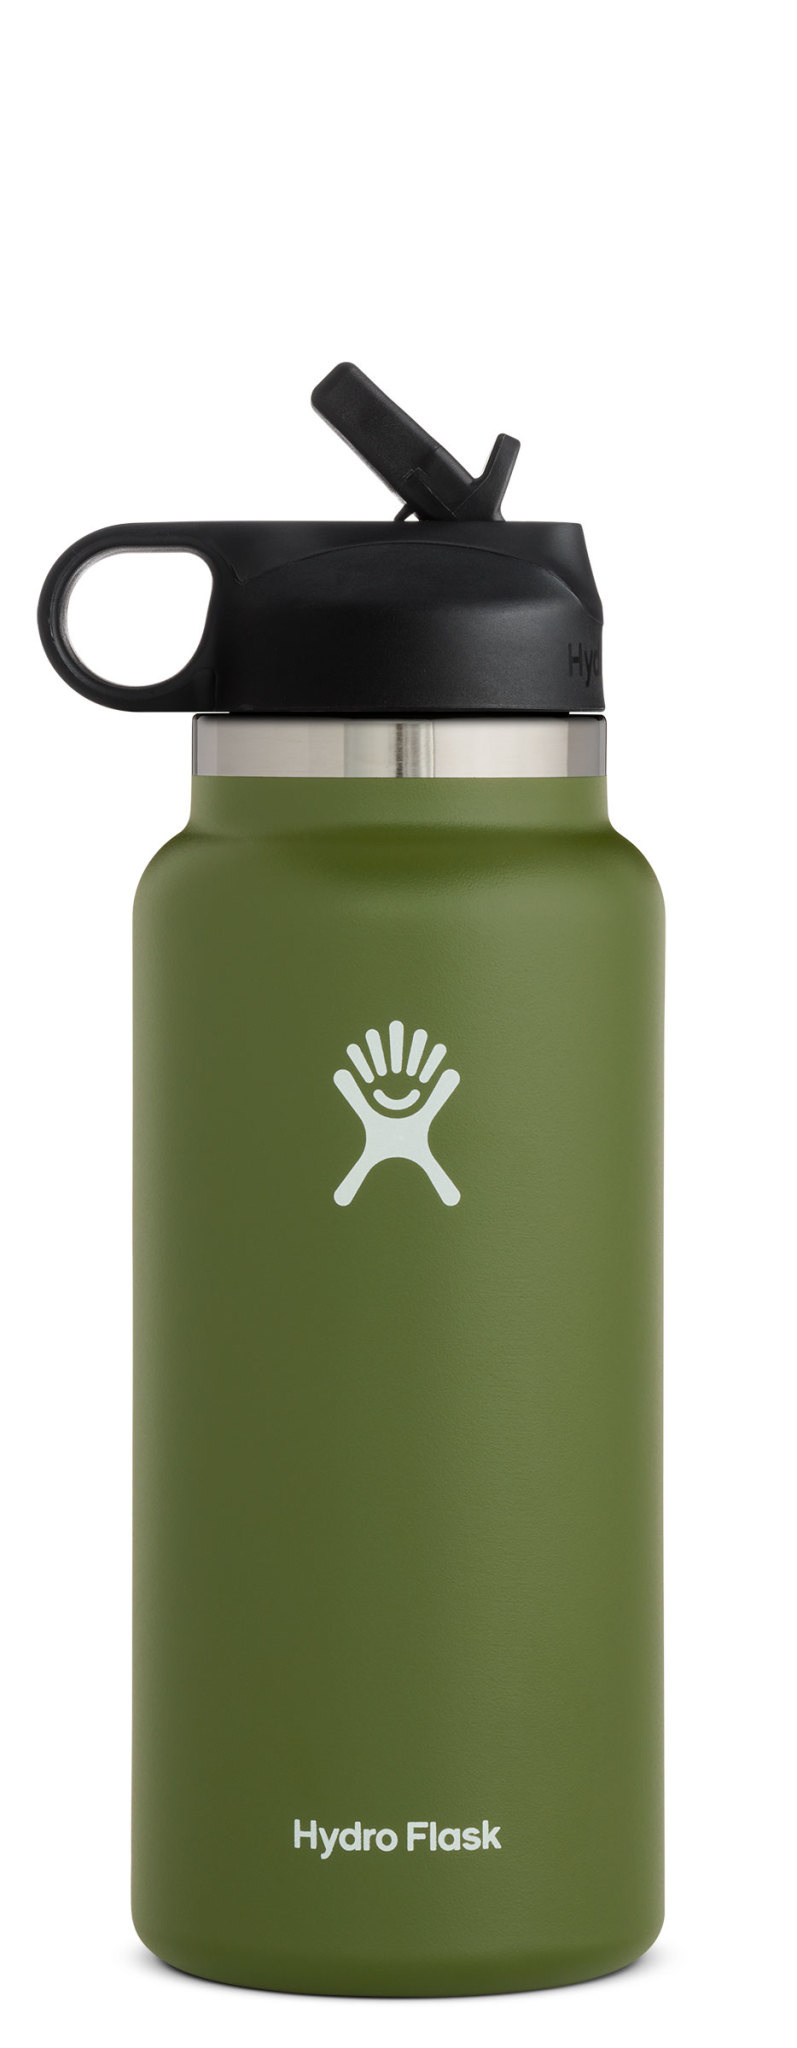 Hydro Flask 32oz Wide Mouth with Straw Lid-9